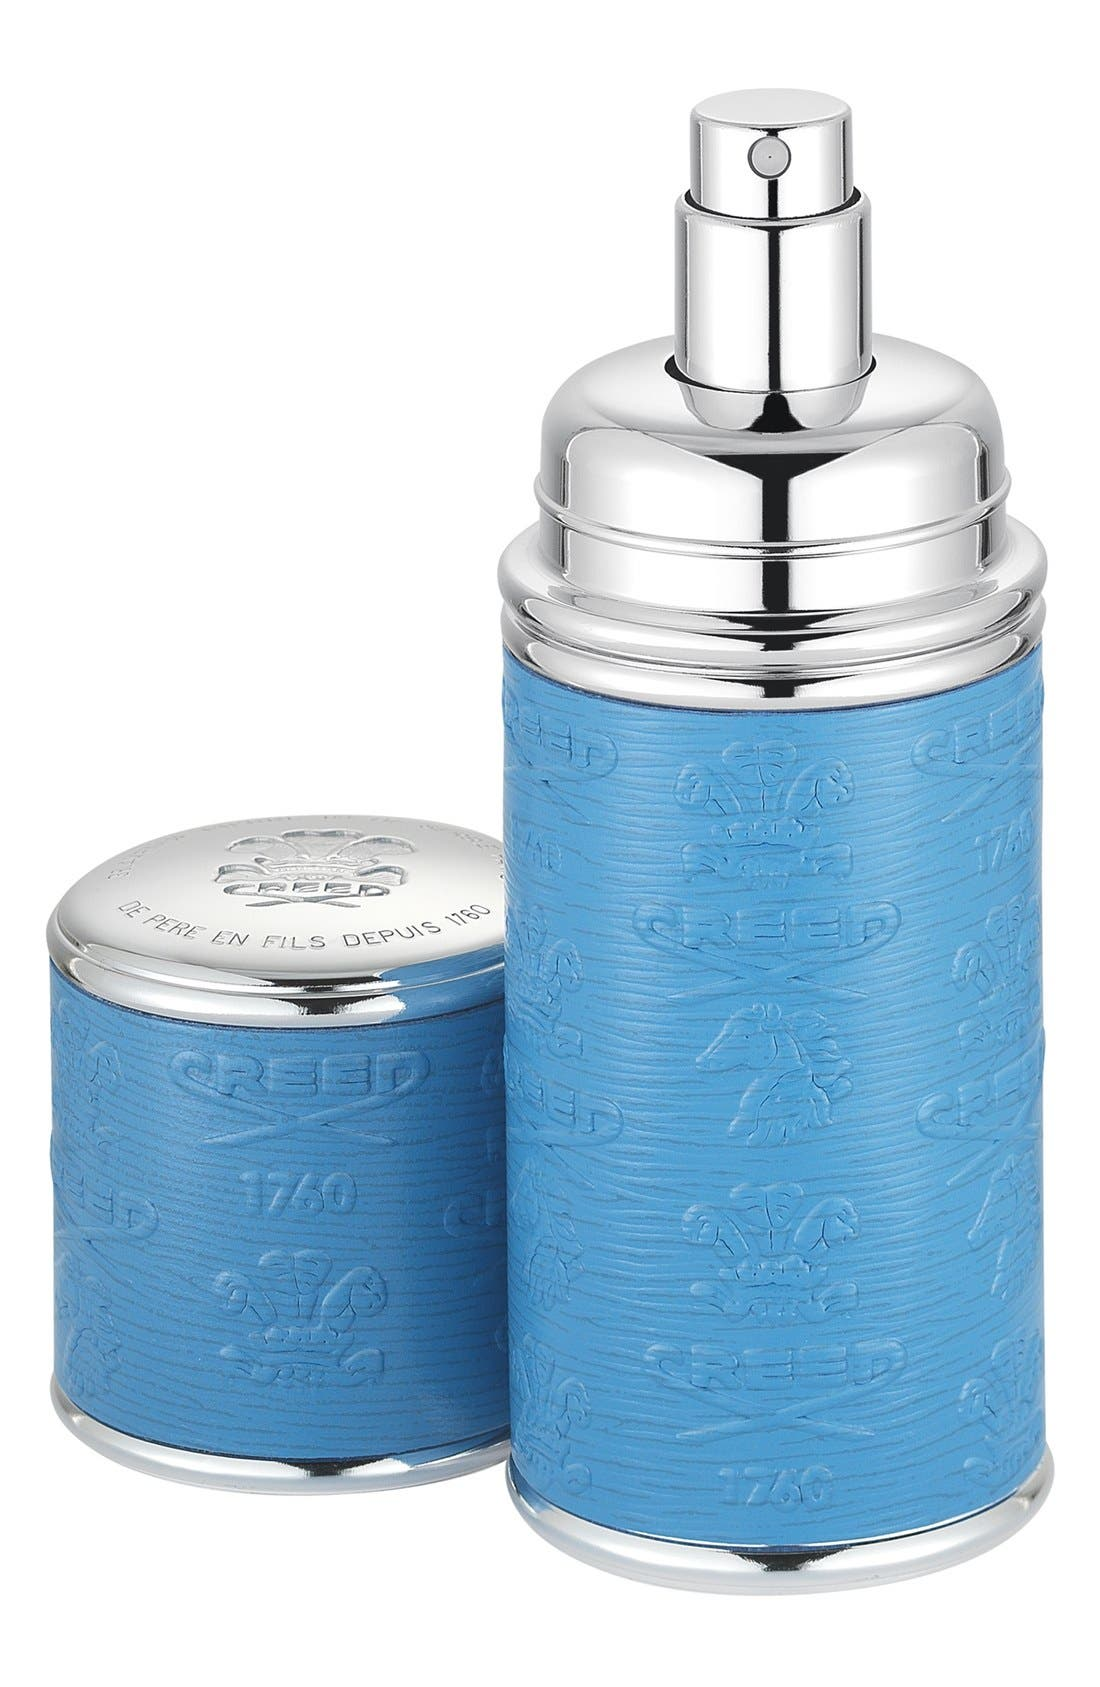 Blue with Silver Trim Leather Atomizer,                             Main thumbnail 1, color,                             NO COLOR